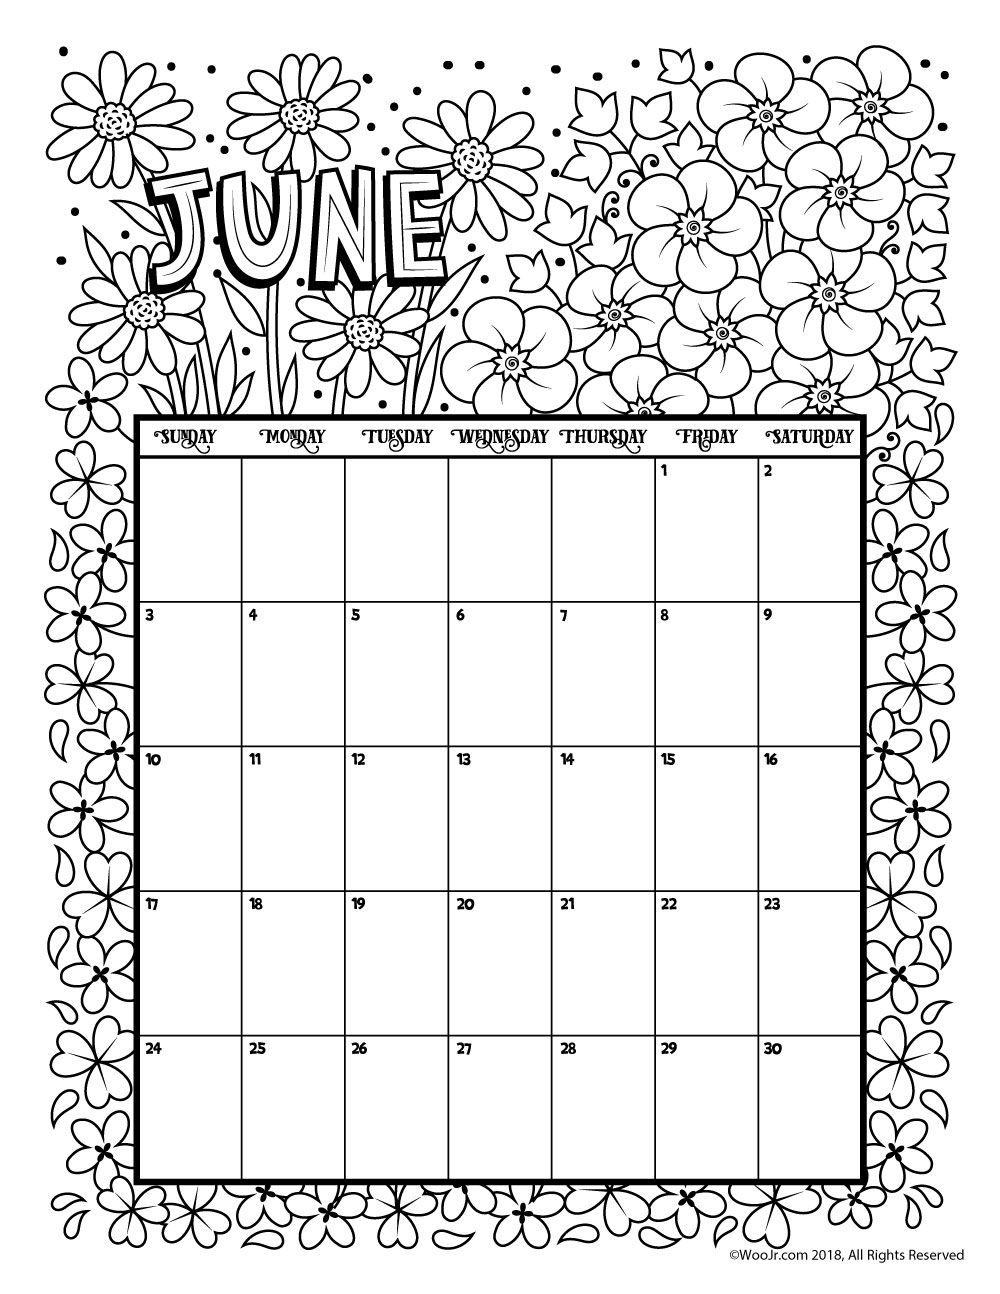 june 2018 coloring calendar page